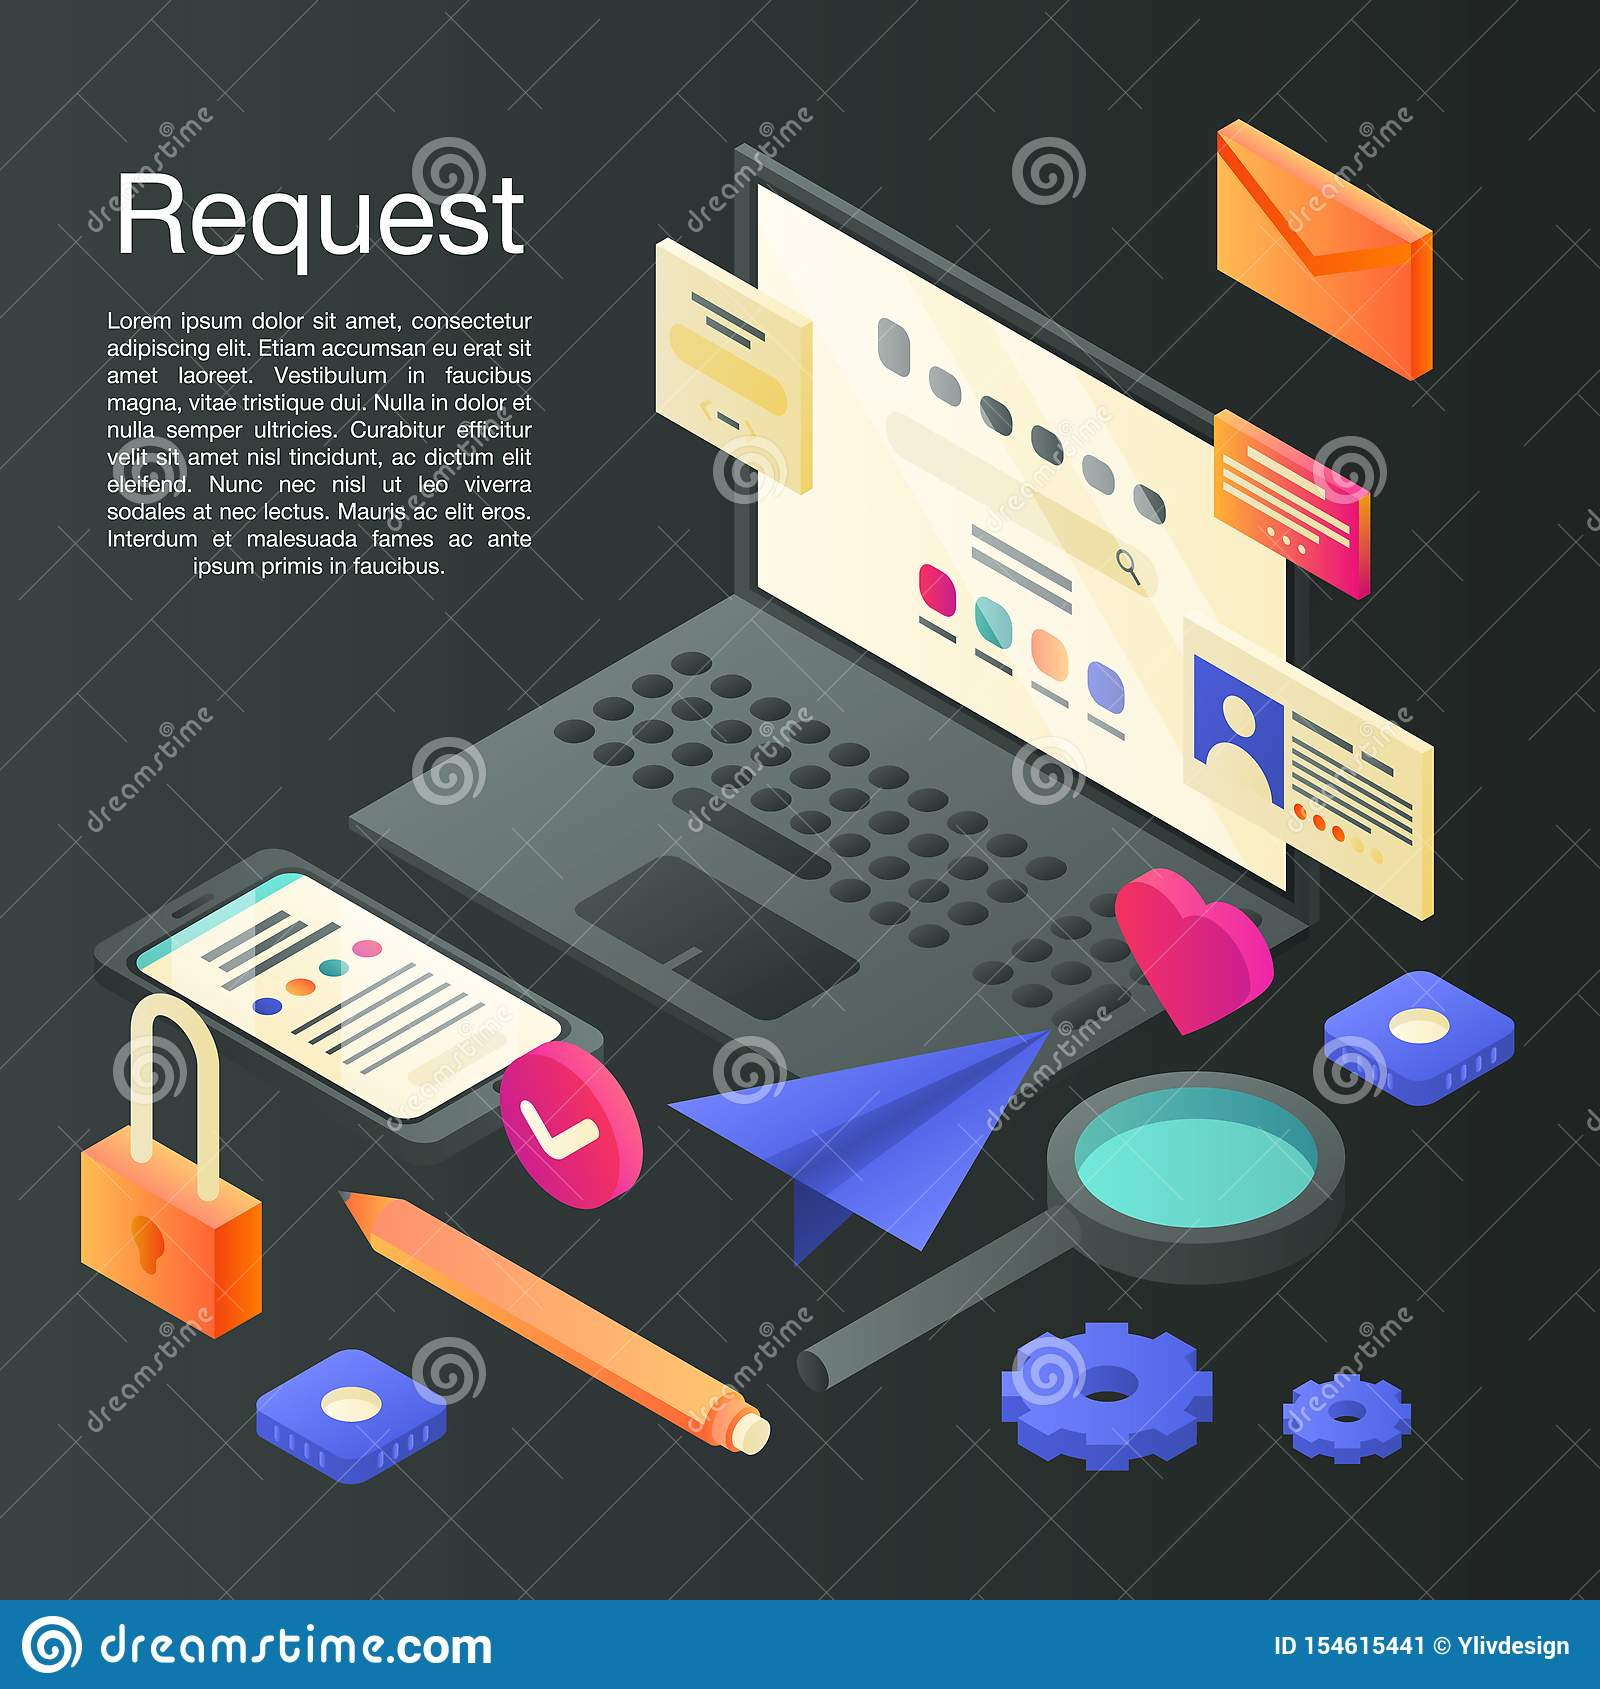 Request concept background, isometric style